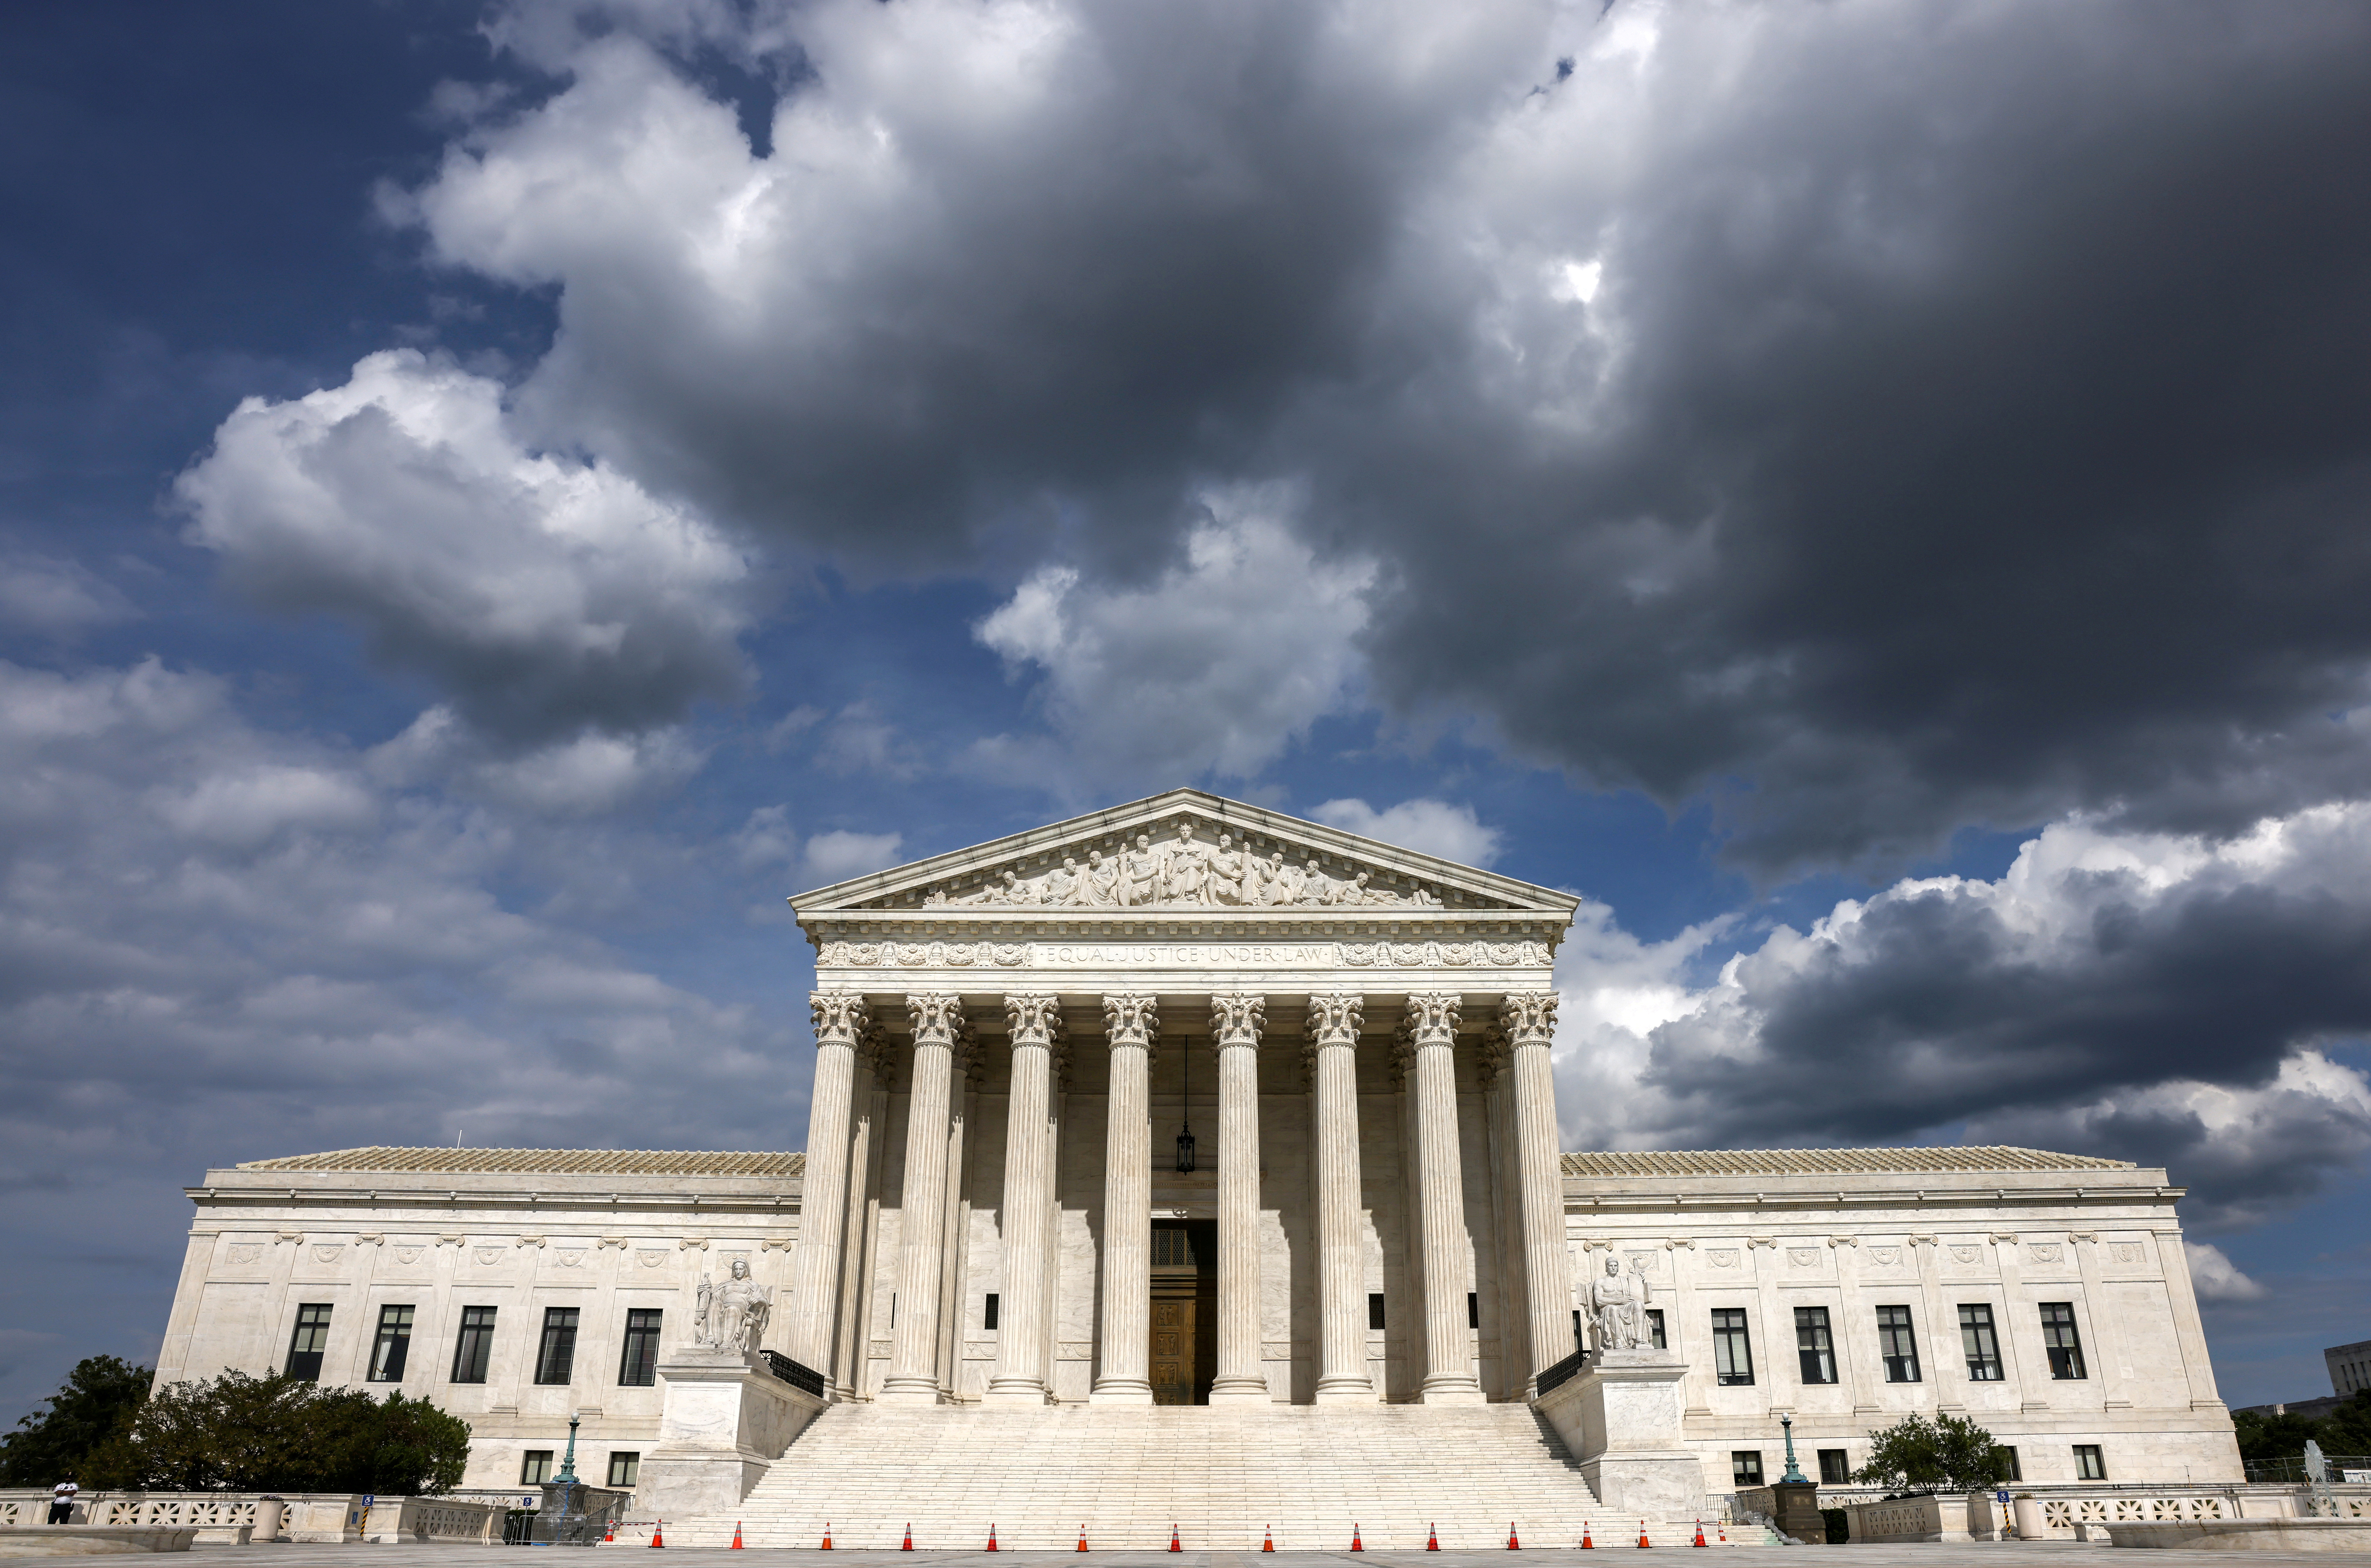 The United States Supreme Court in Washington, U.S. REUTERS/Evelyn Hockstein